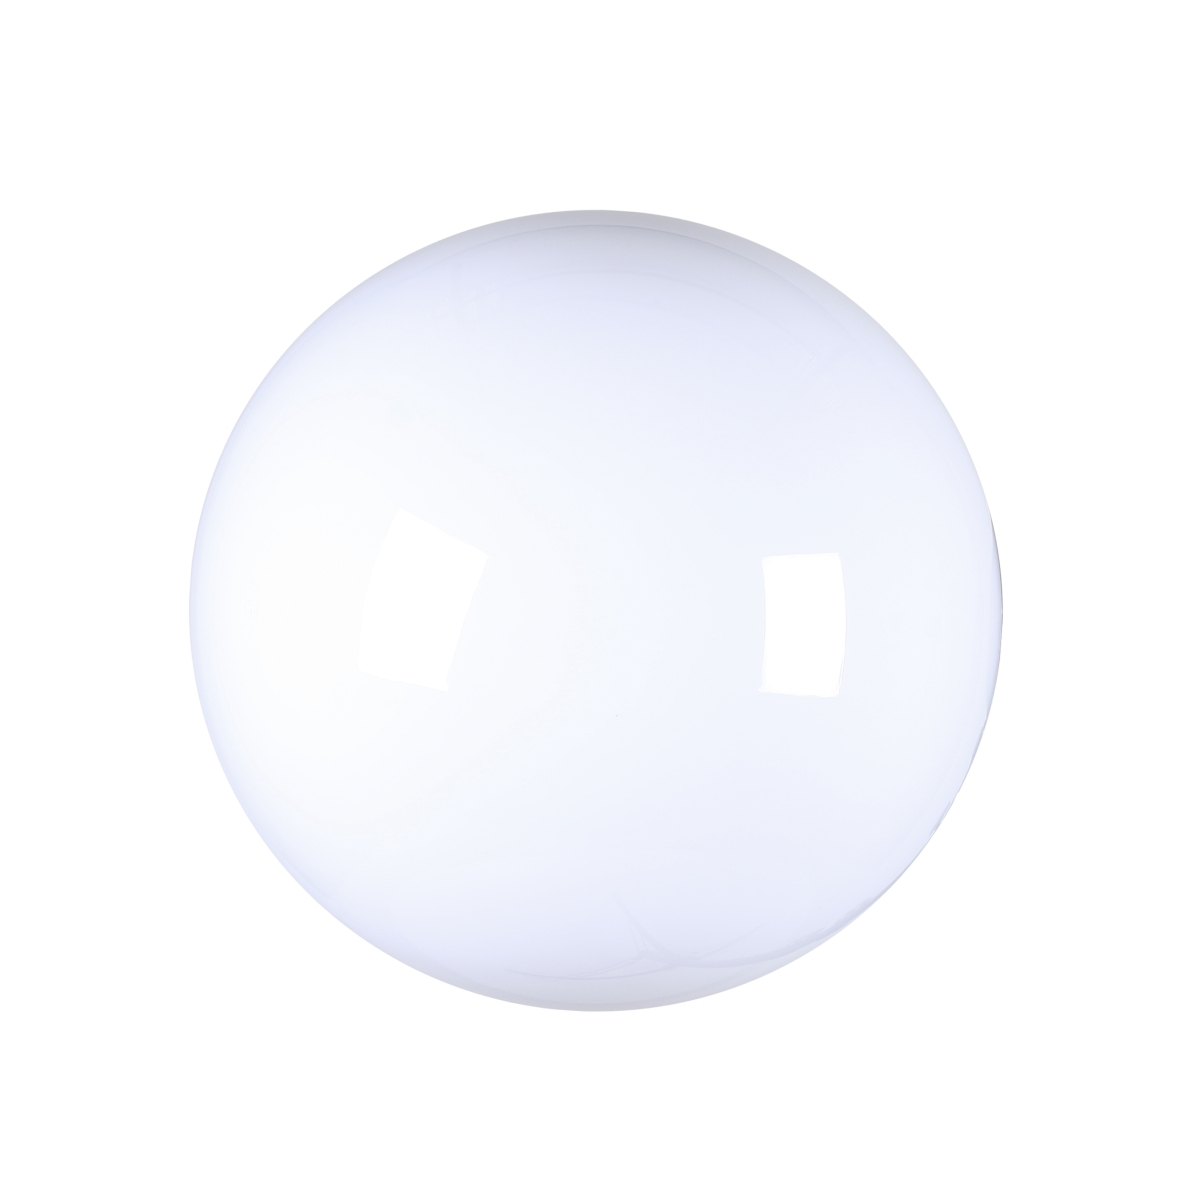 Walimex pro Spherical Diffuser, 30cm univ.connect.